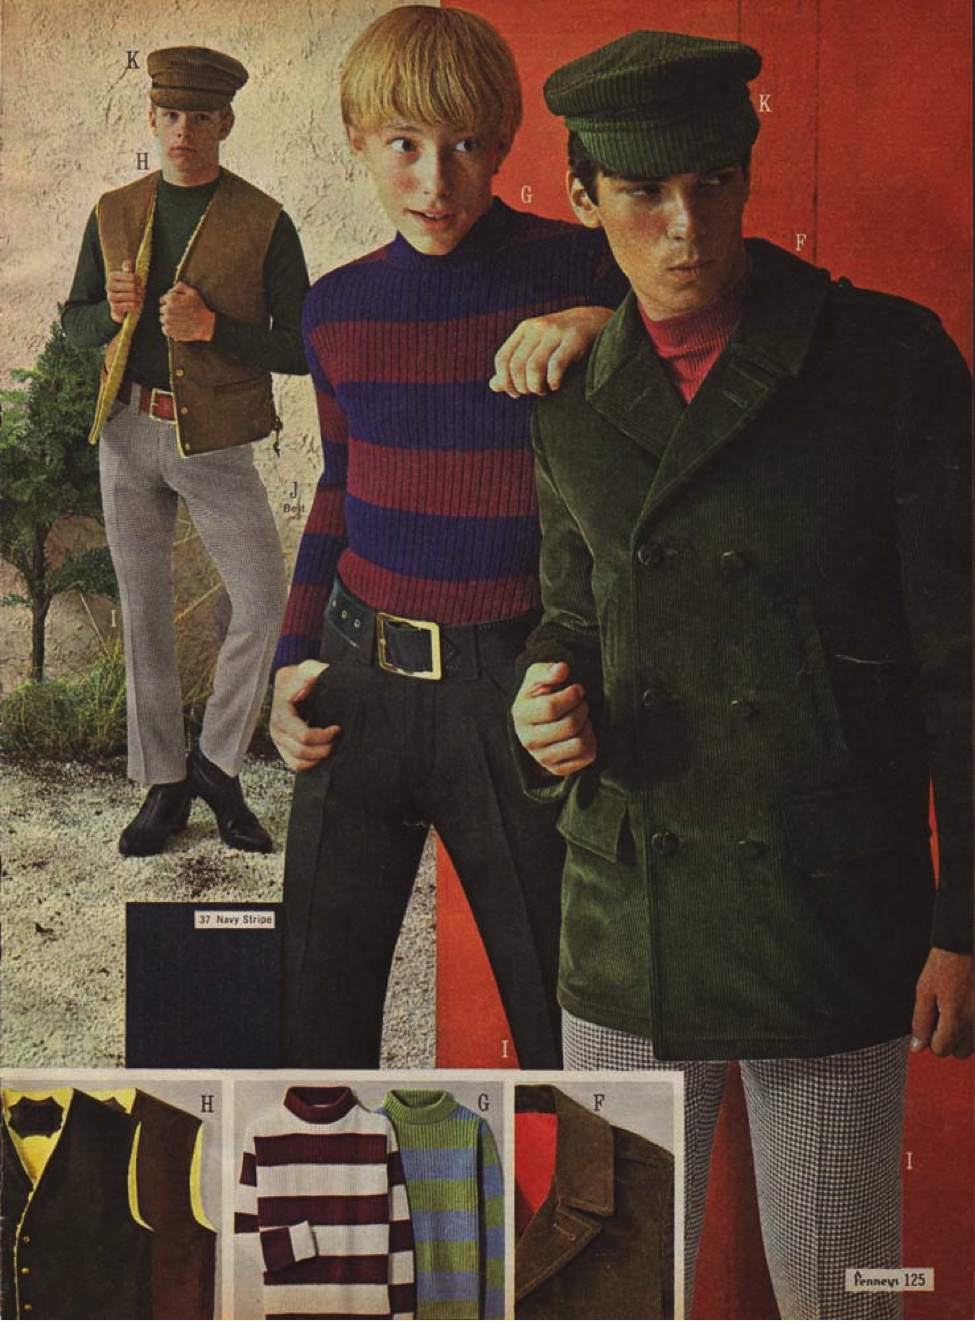 THE SWINGING 60s – How Men's Fashion Exploded | 1960s ...